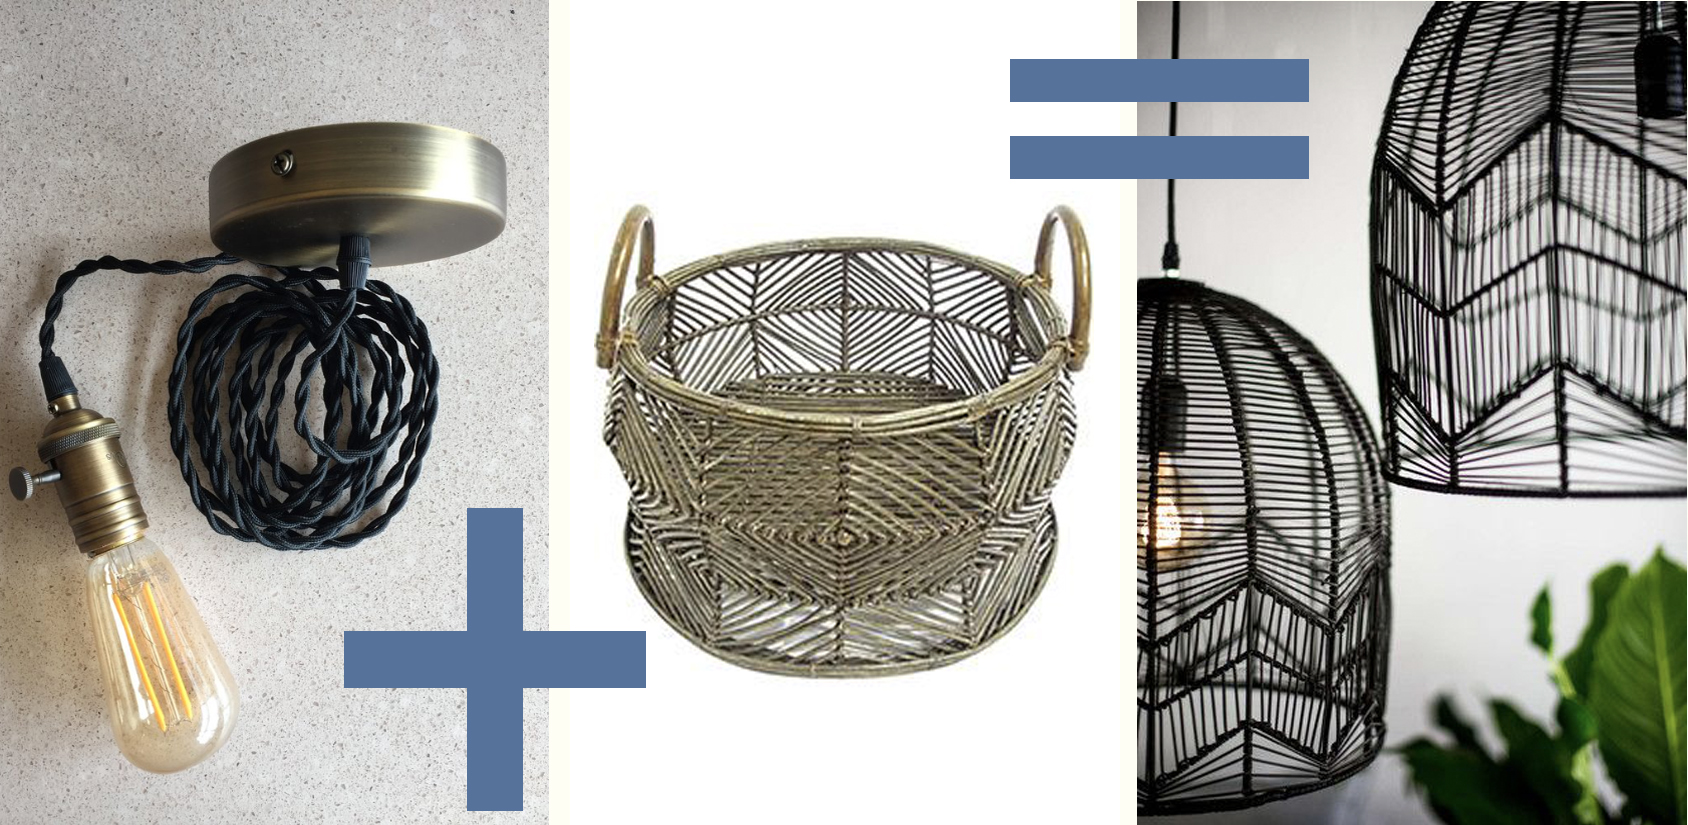 Light bulb & canopy set available at Statements. Basket from Shoptime via  Pinterest . Light fixture from Milly and Eugene via  Pinterest .